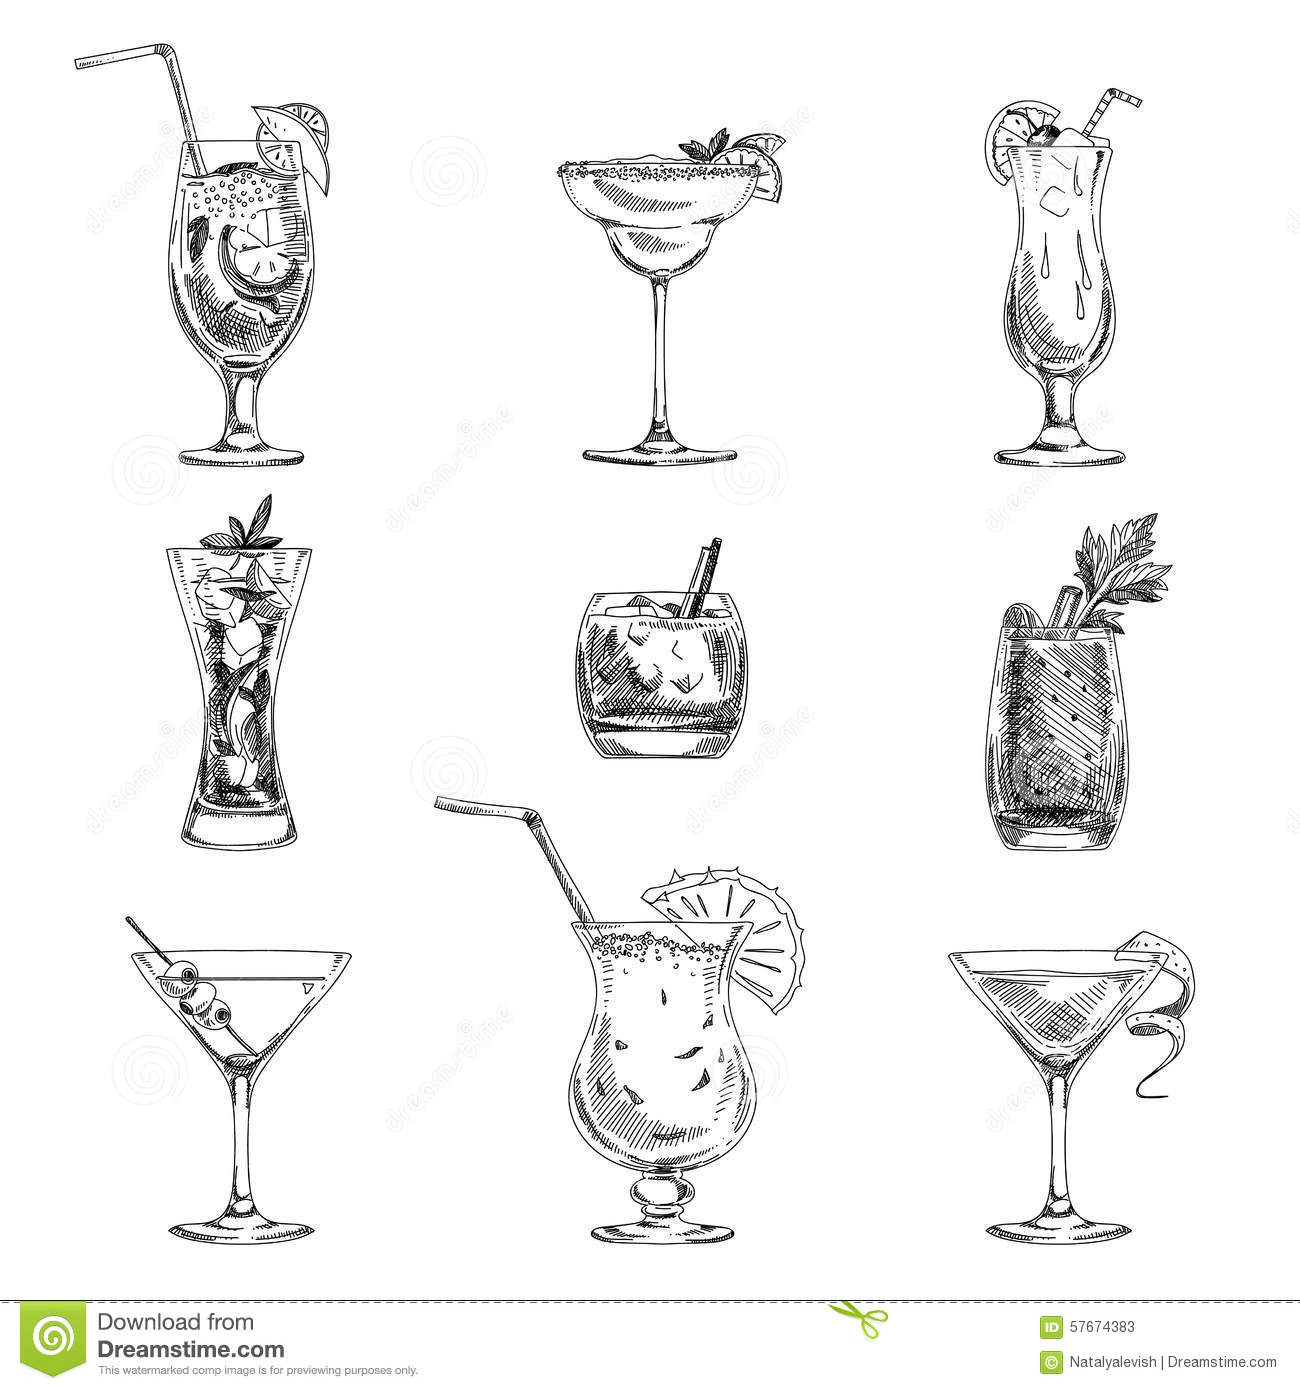 map o with Stock Illustration Vector Hand Drawn Set Cocktails Alcohol Drinks Sketch Image57674383 on Archivo Tren Ligero de GDL further Reviewmotherboard Msi 790fx Gd70   Placa De Video Rd4890 Cyclone together with  in addition Stock Illustration Vector Hand Drawn Set Cocktails Alcohol Drinks Sketch Image57674383 besides Clipart Hands Up.